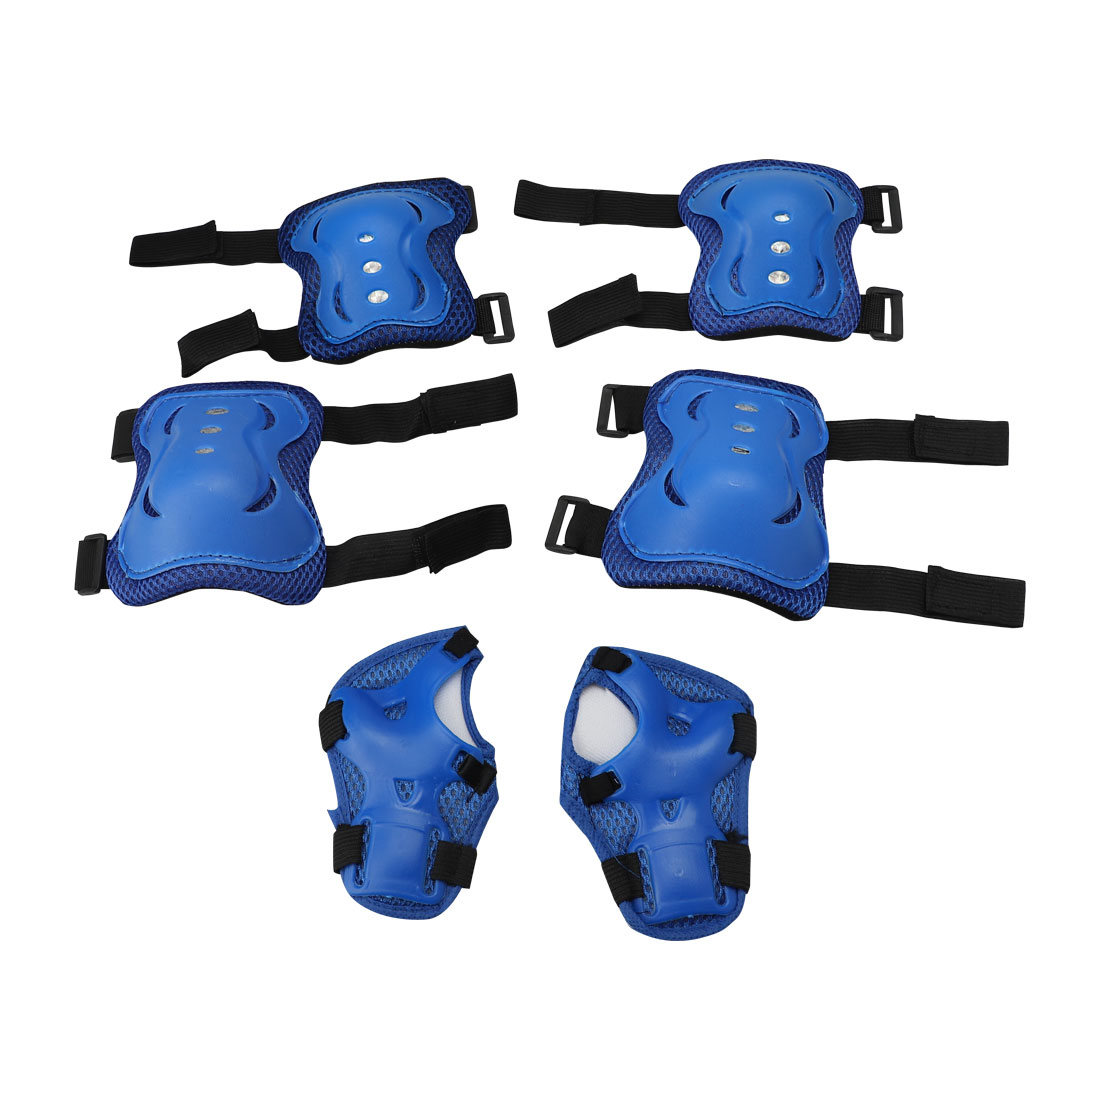 Unique Bargains 6 Pcs   Roller  Skating Wrist Elbow Knee Pad Set Protect Brace Support Guard Gear Blue